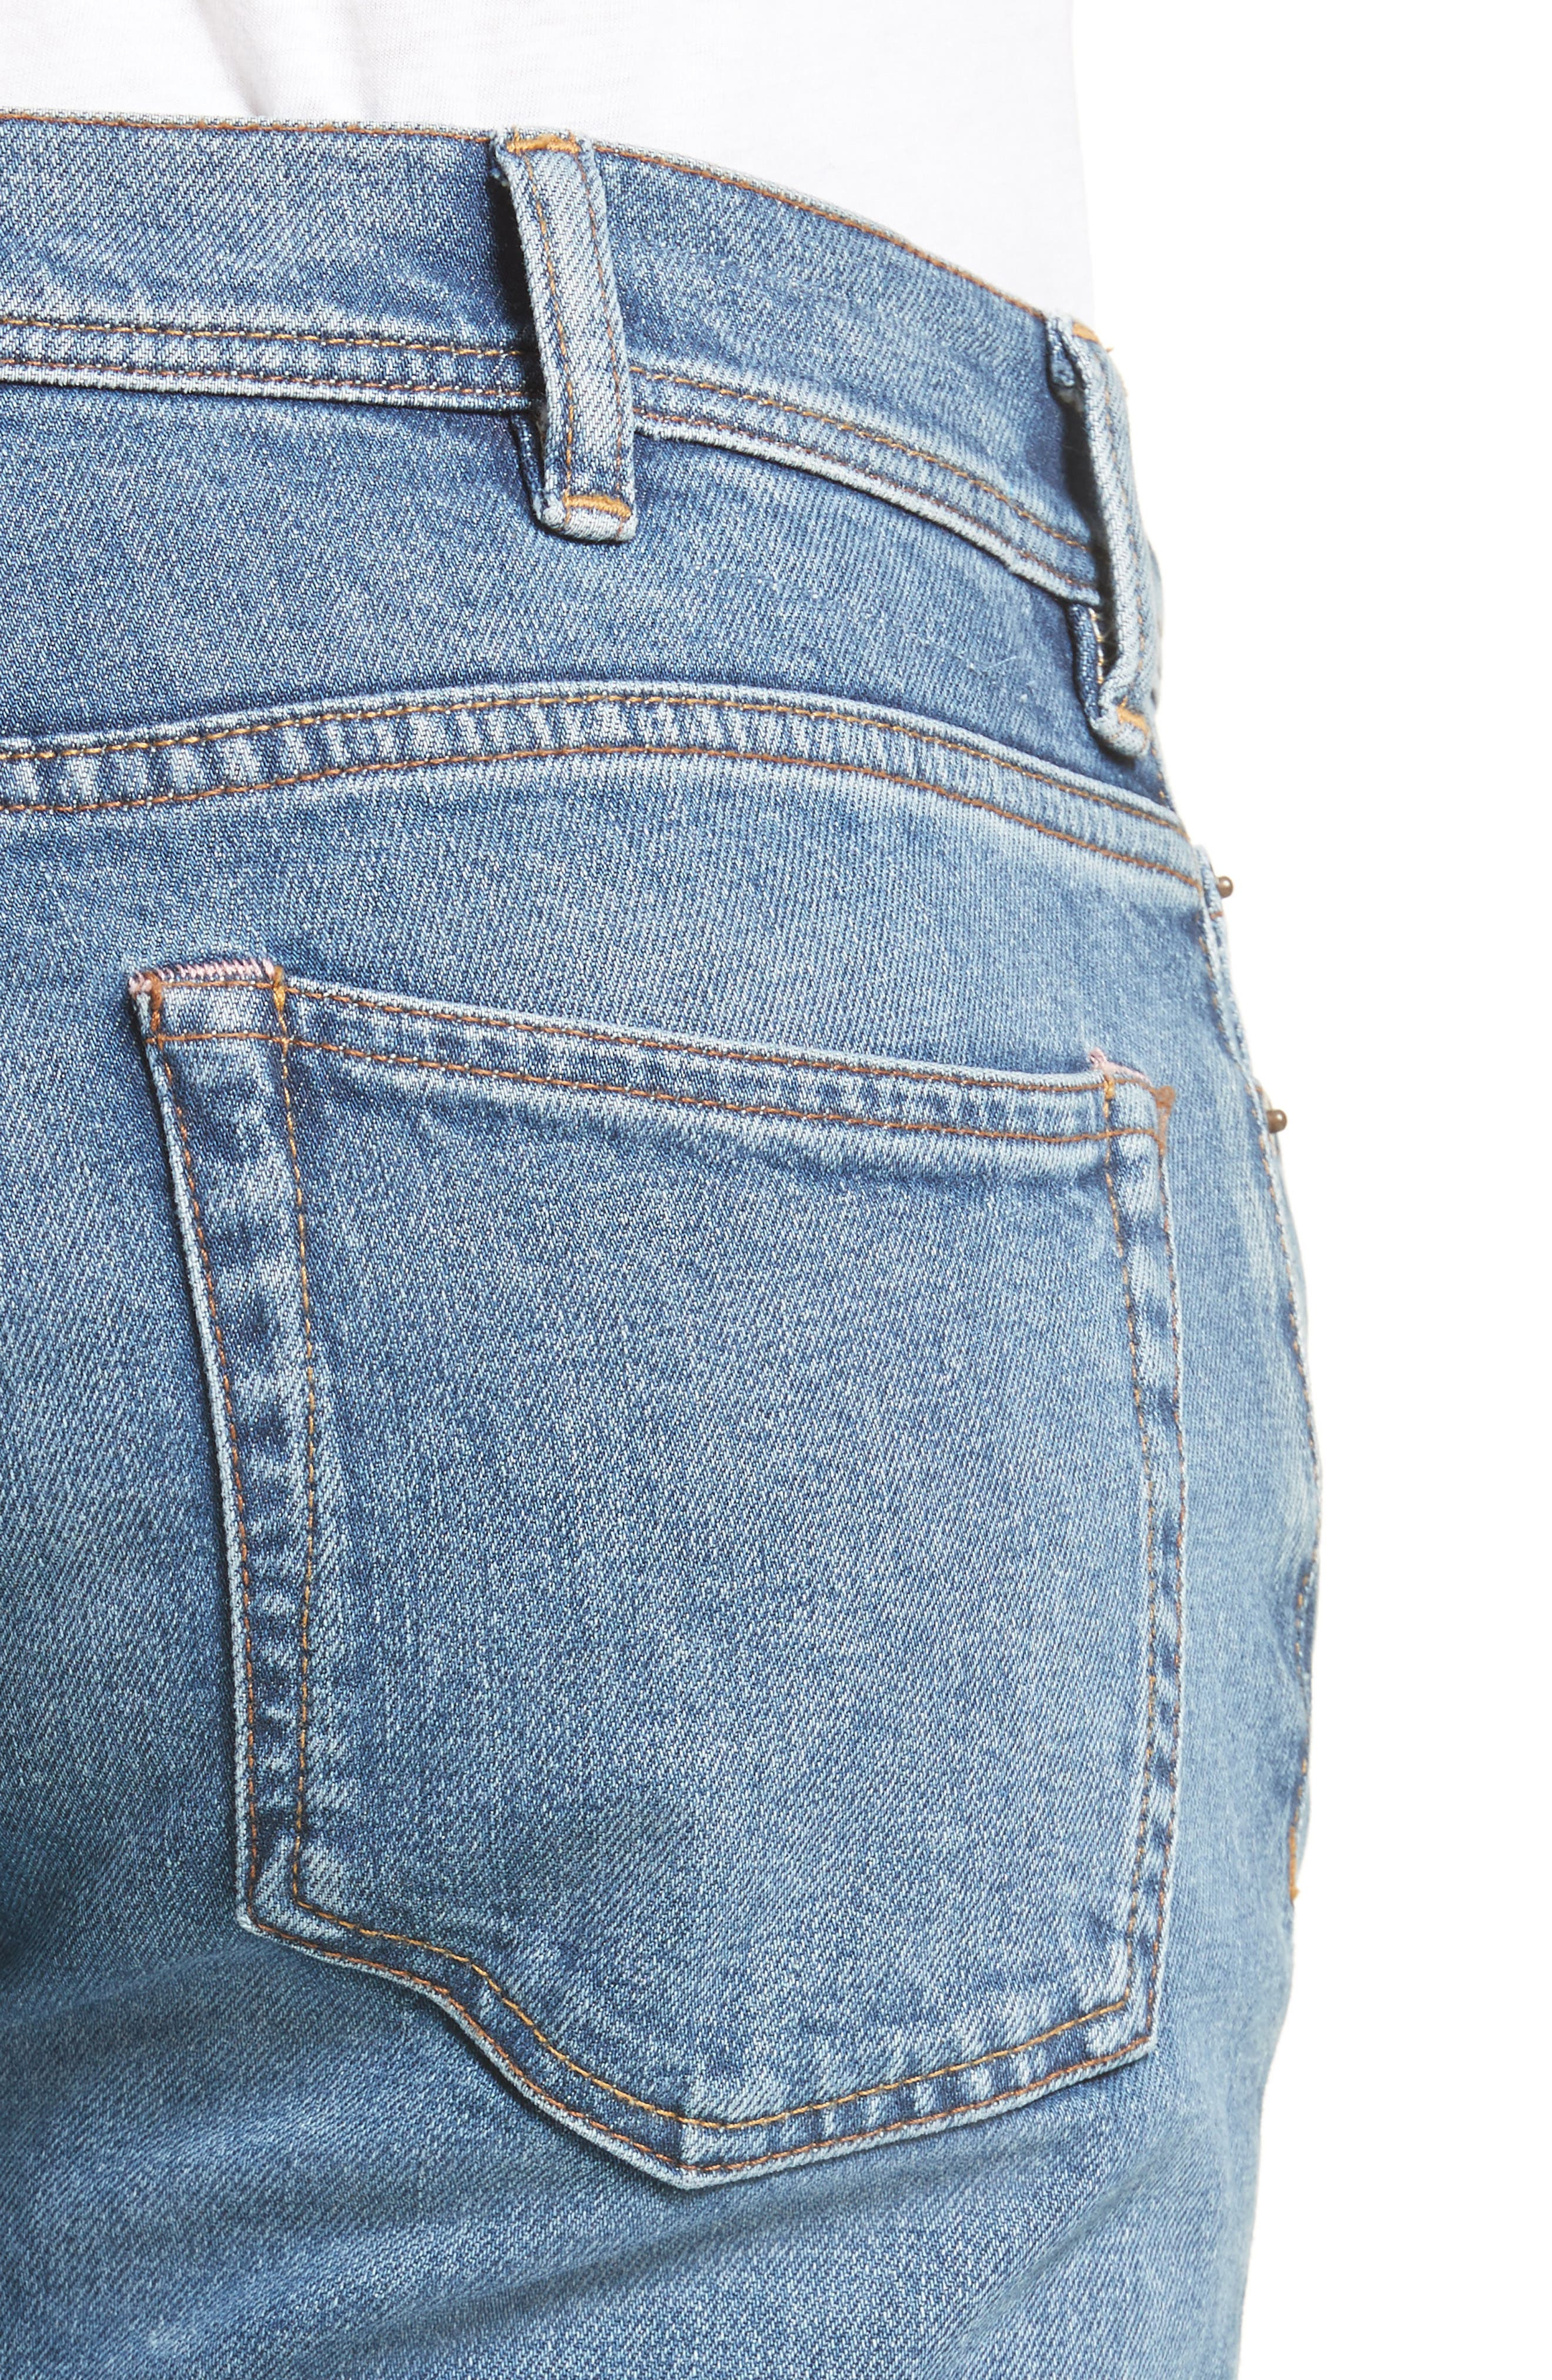 North Skinny Jeans,                             Alternate thumbnail 4, color,                             420